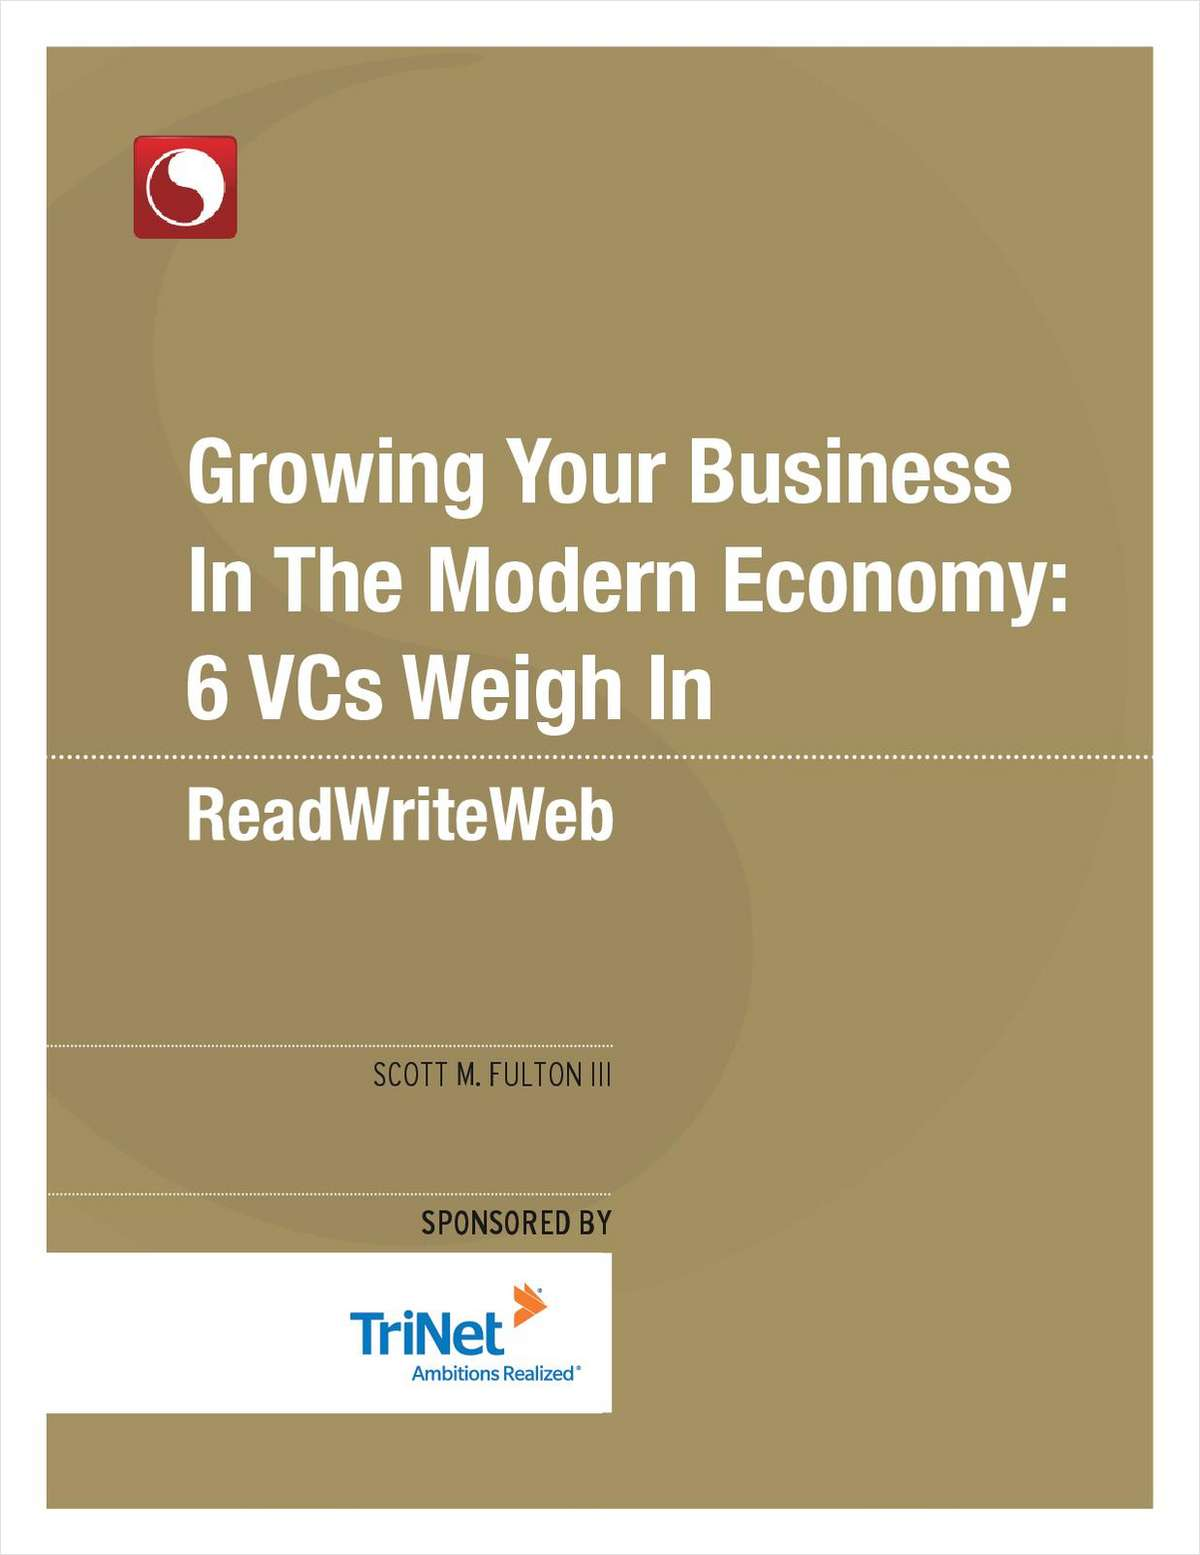 Growing Your Business in the Modern Economy